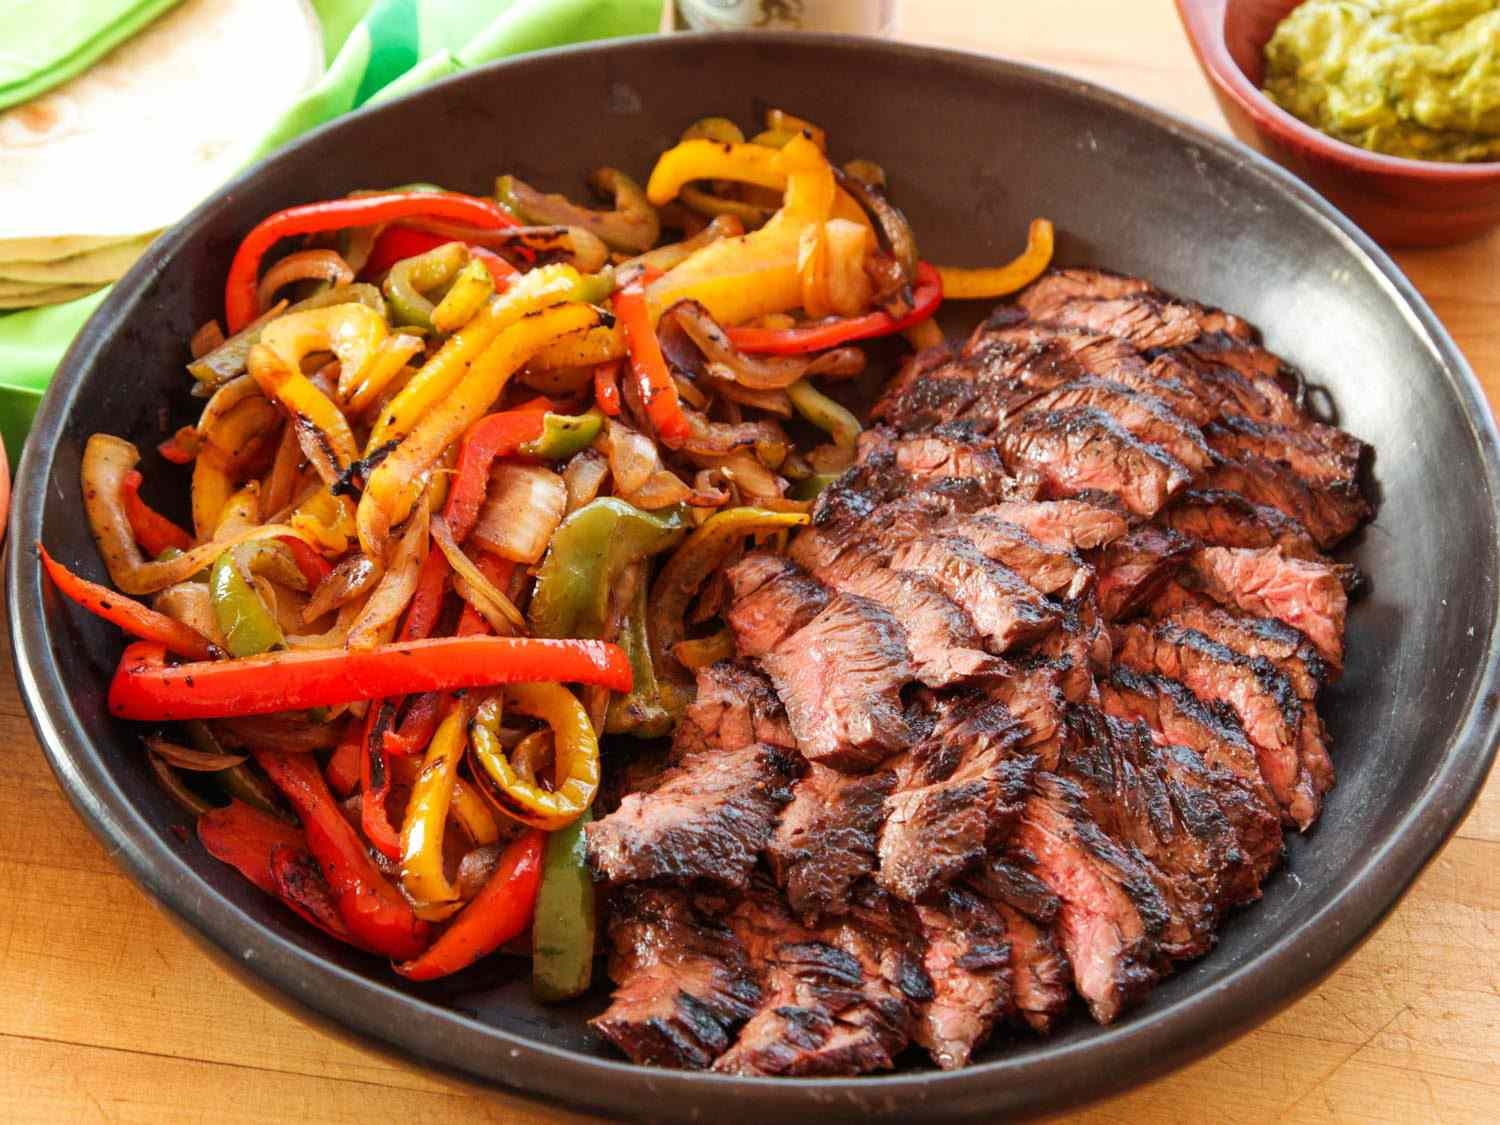 A bowl full of cooked peppers and onions and grilled sliced steak for fajitas, with tortillas and guacamole visible in the background.